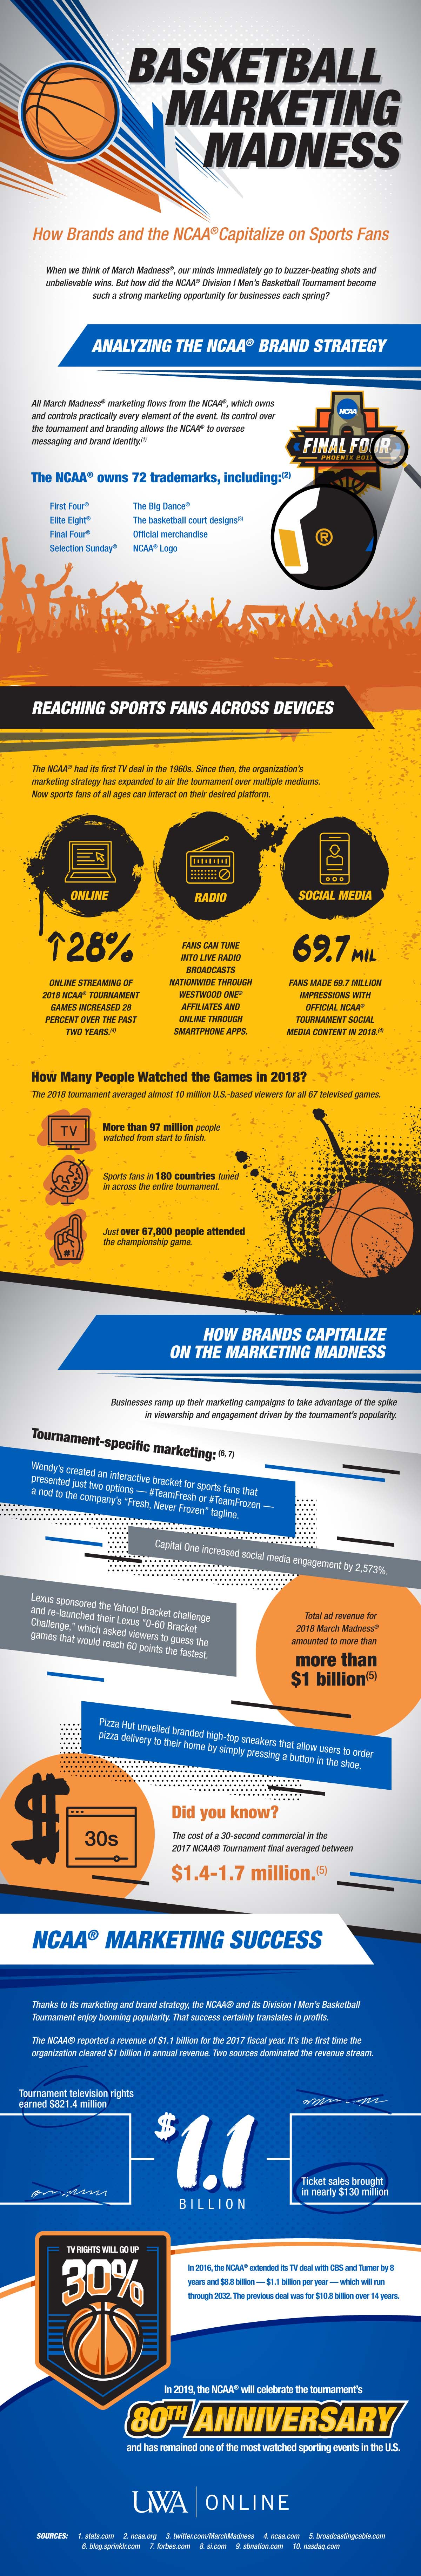 Basketball Marketing Madness: How Brands Capitalize On Sports Fans